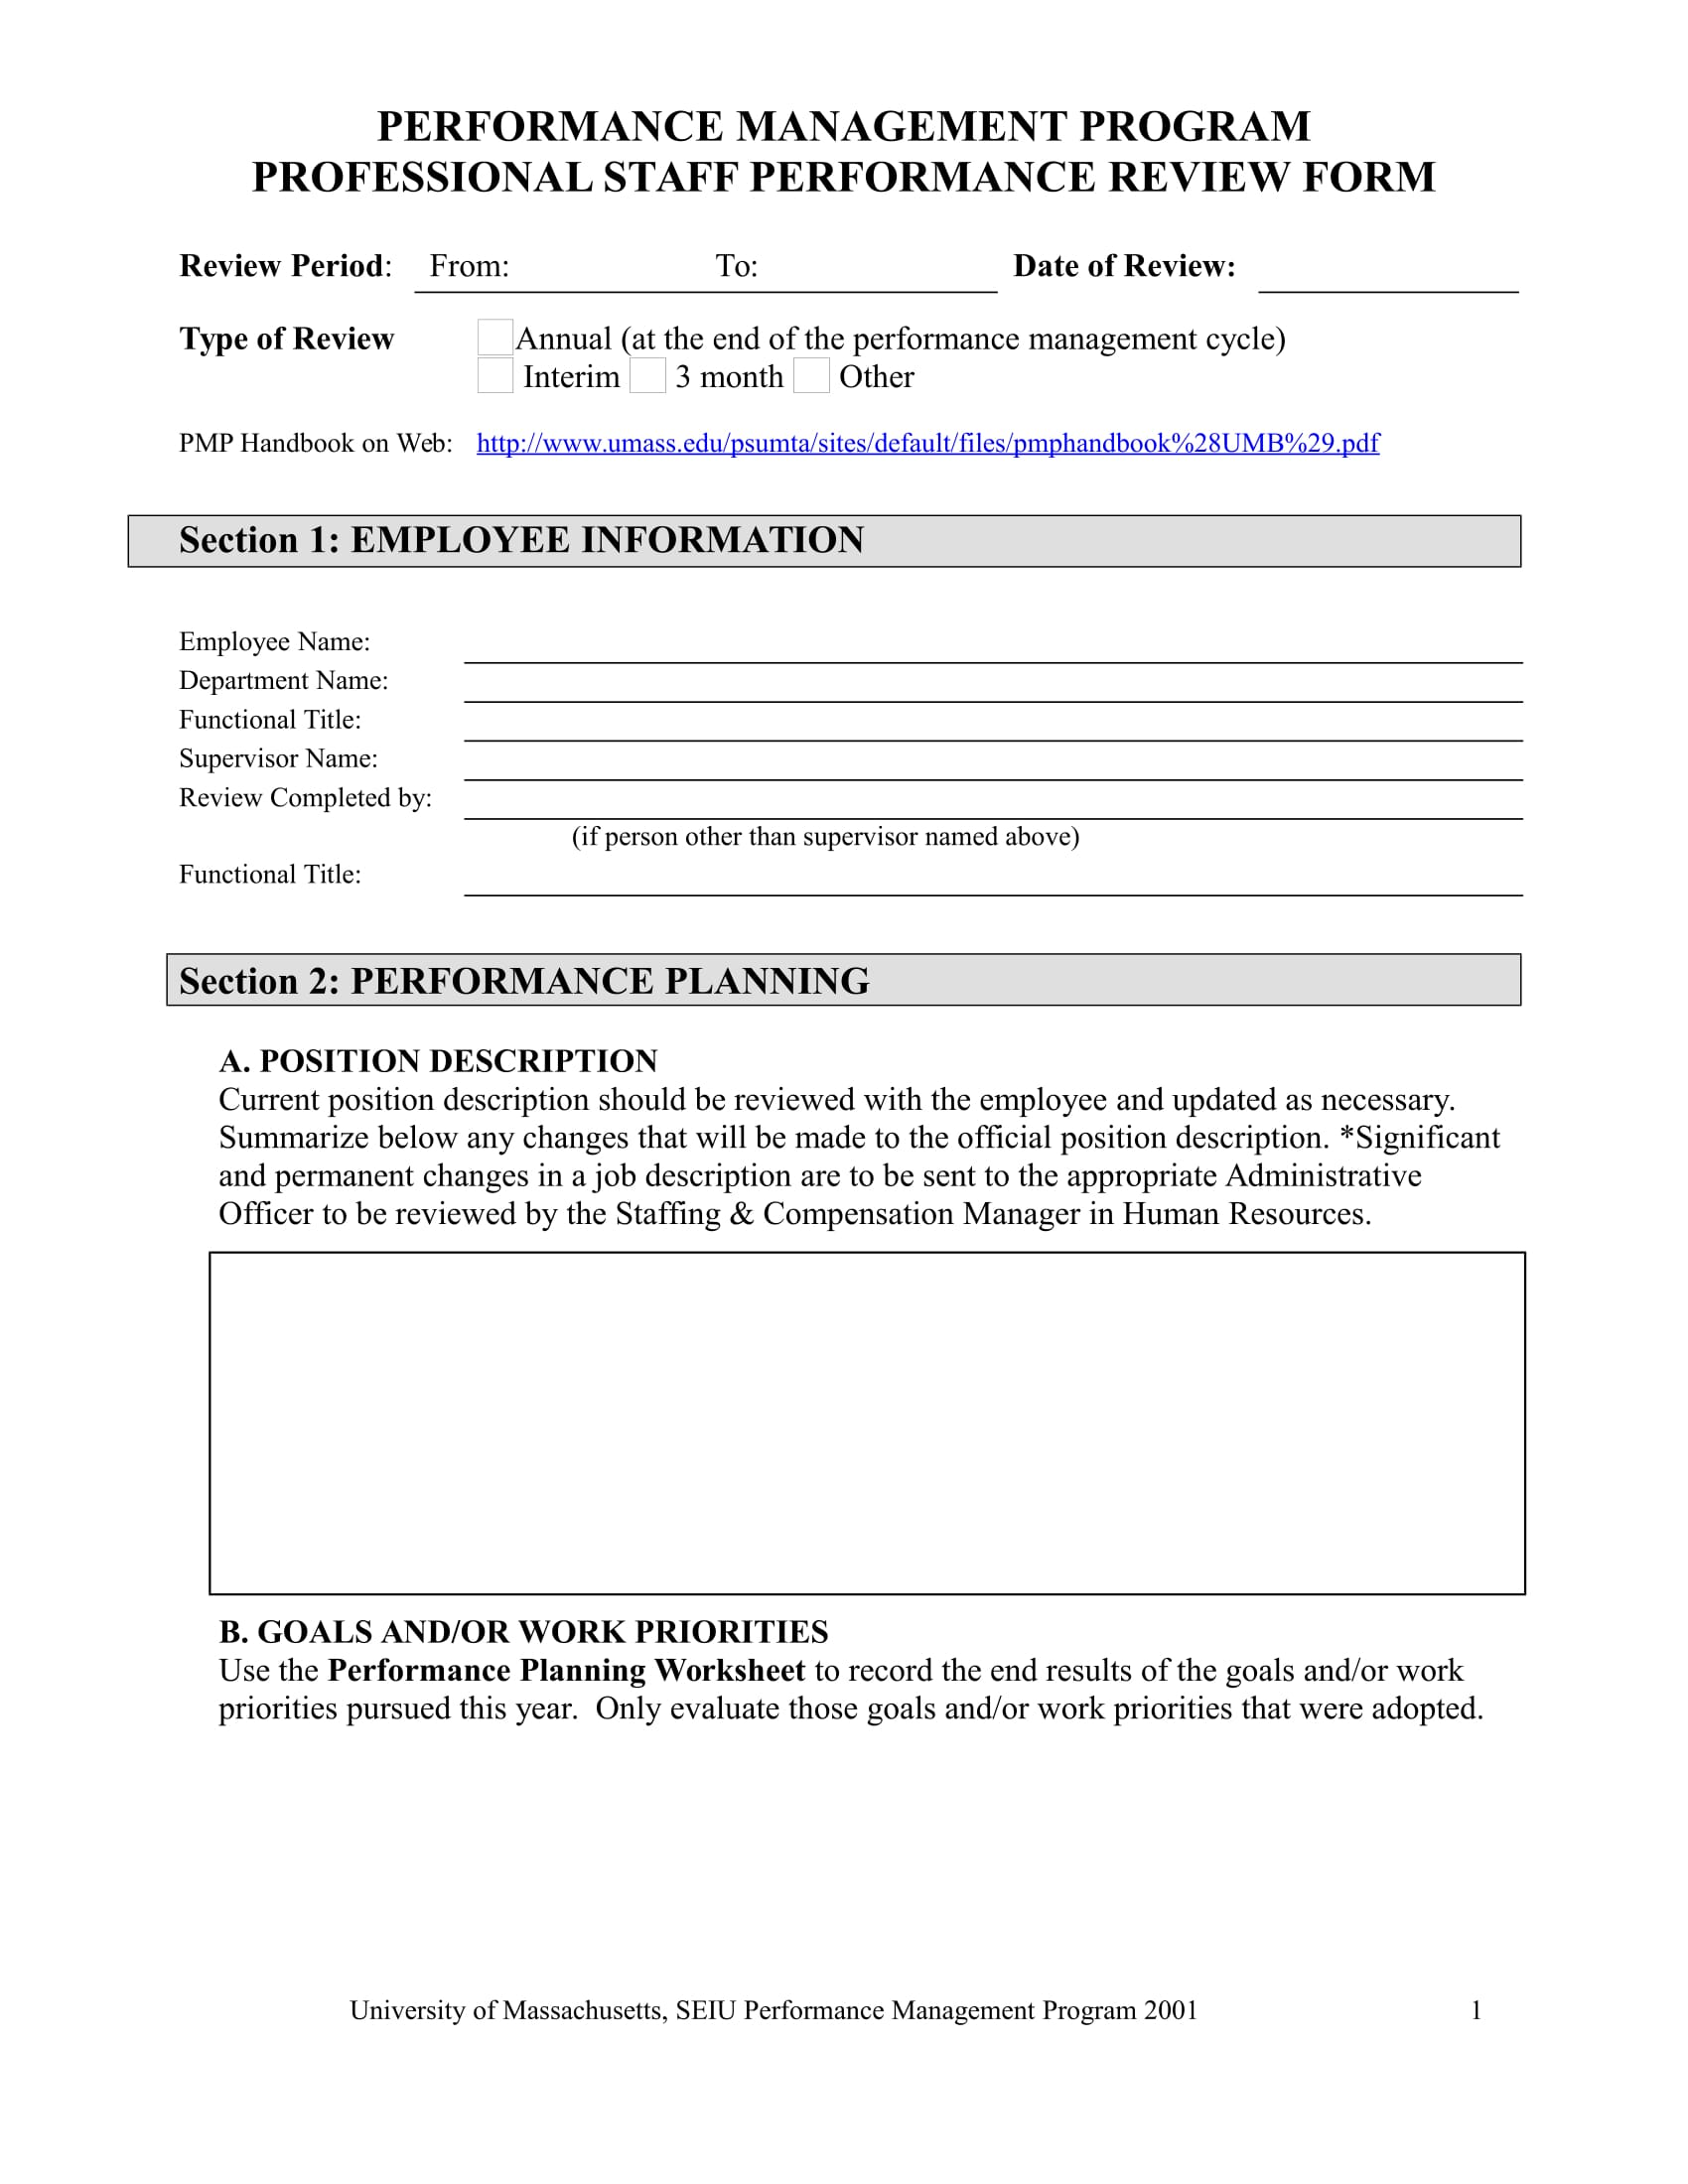 professional staff performance review form 1